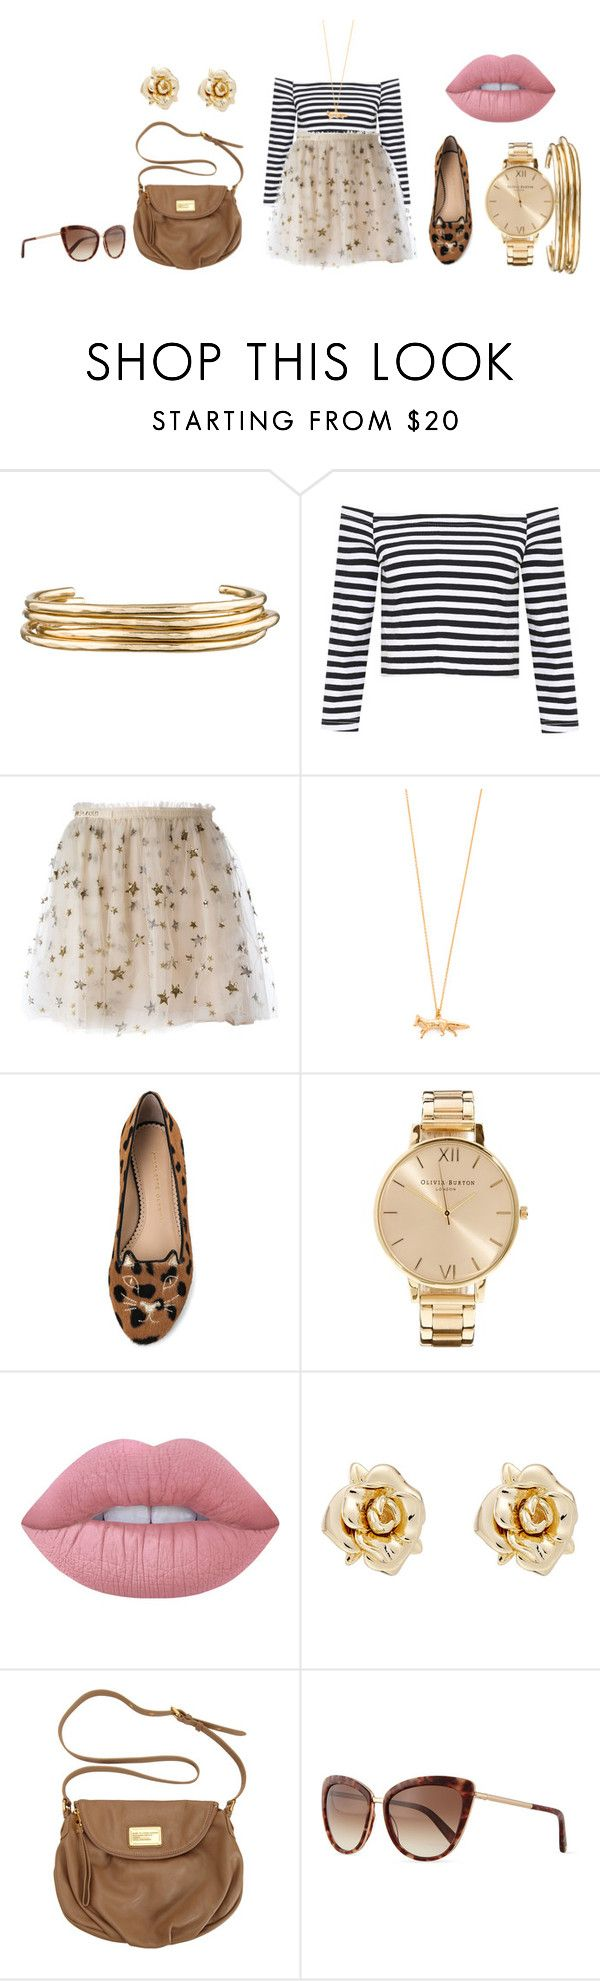 """""""🍩"""" by lena1612 ❤ liked on Polyvore featuring Jennifer Fisher, Valentino, Alex Monroe, Charlotte Olympia, Olivia Burton, Lime Crime, Marc by Marc Jacobs and Kate Spade"""